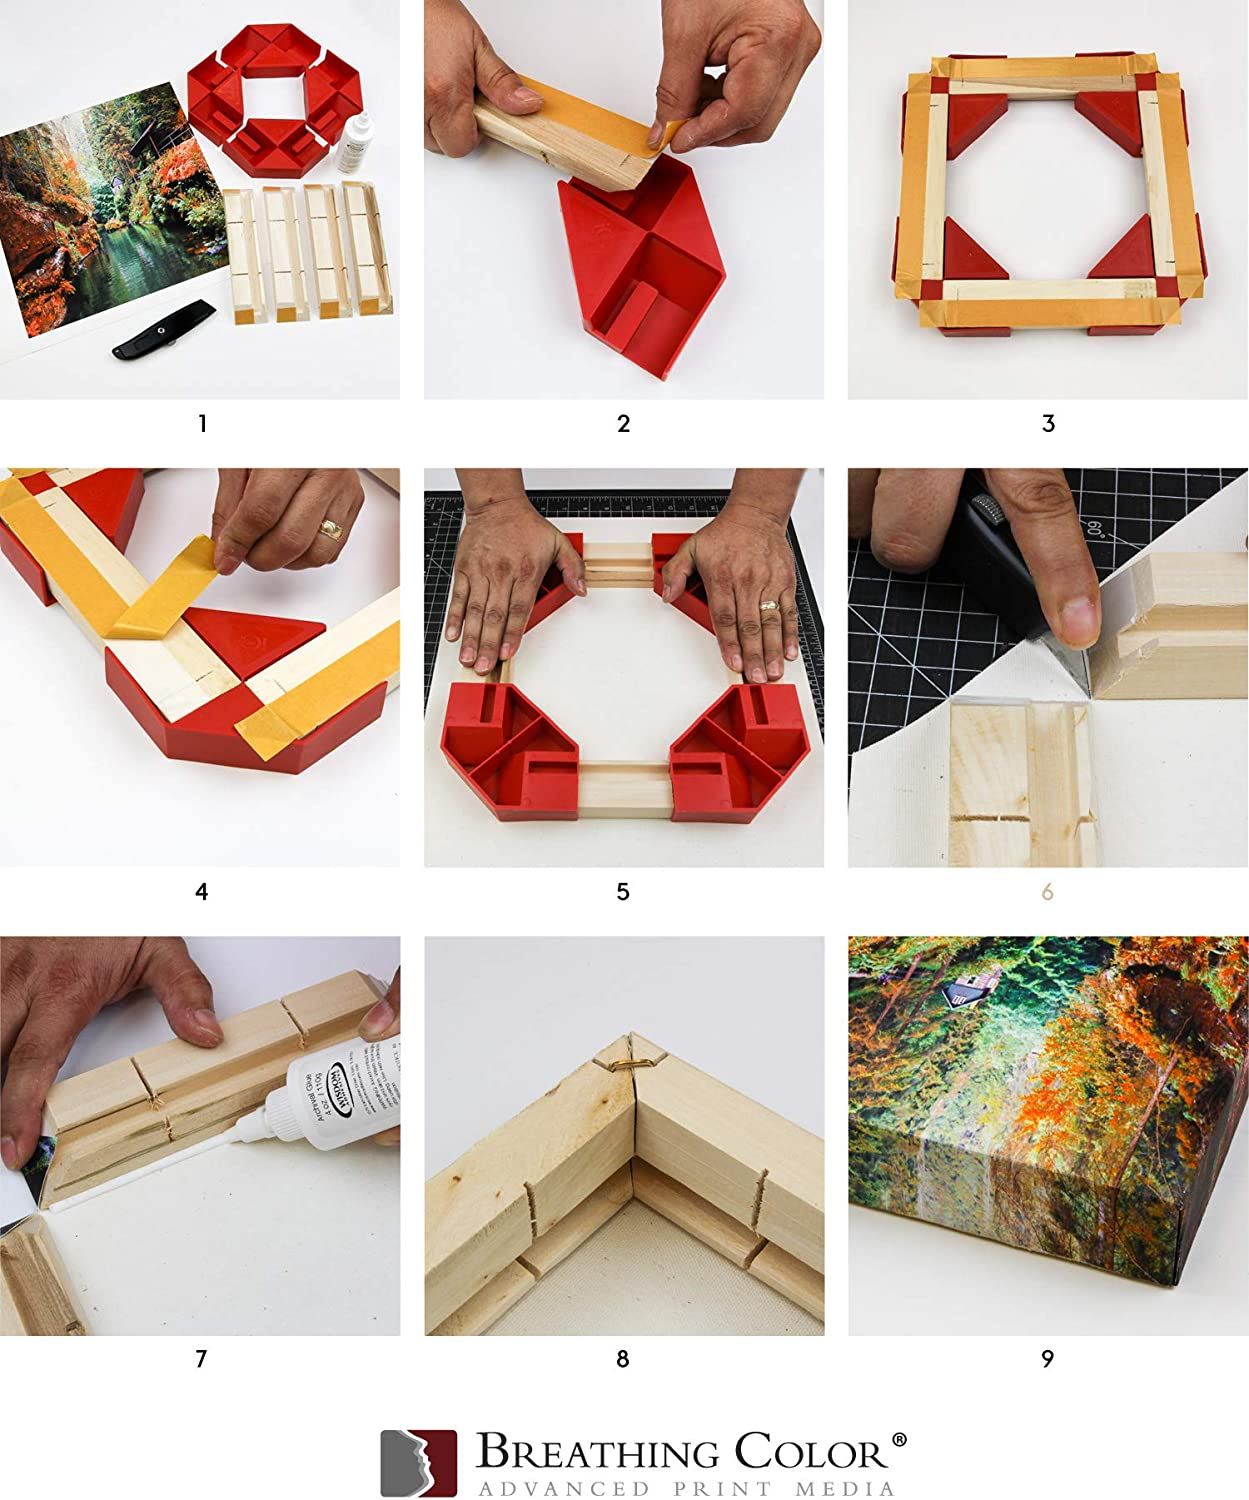 6pk DIY Gallery Wrap System with Easy Assembly and Uncomplicated Canvas Stretching Setup Create Artwork in Minutes That Rivals Professional Gallery Wraps Kiln-Dried EasyWrappe Pro 1.75-8